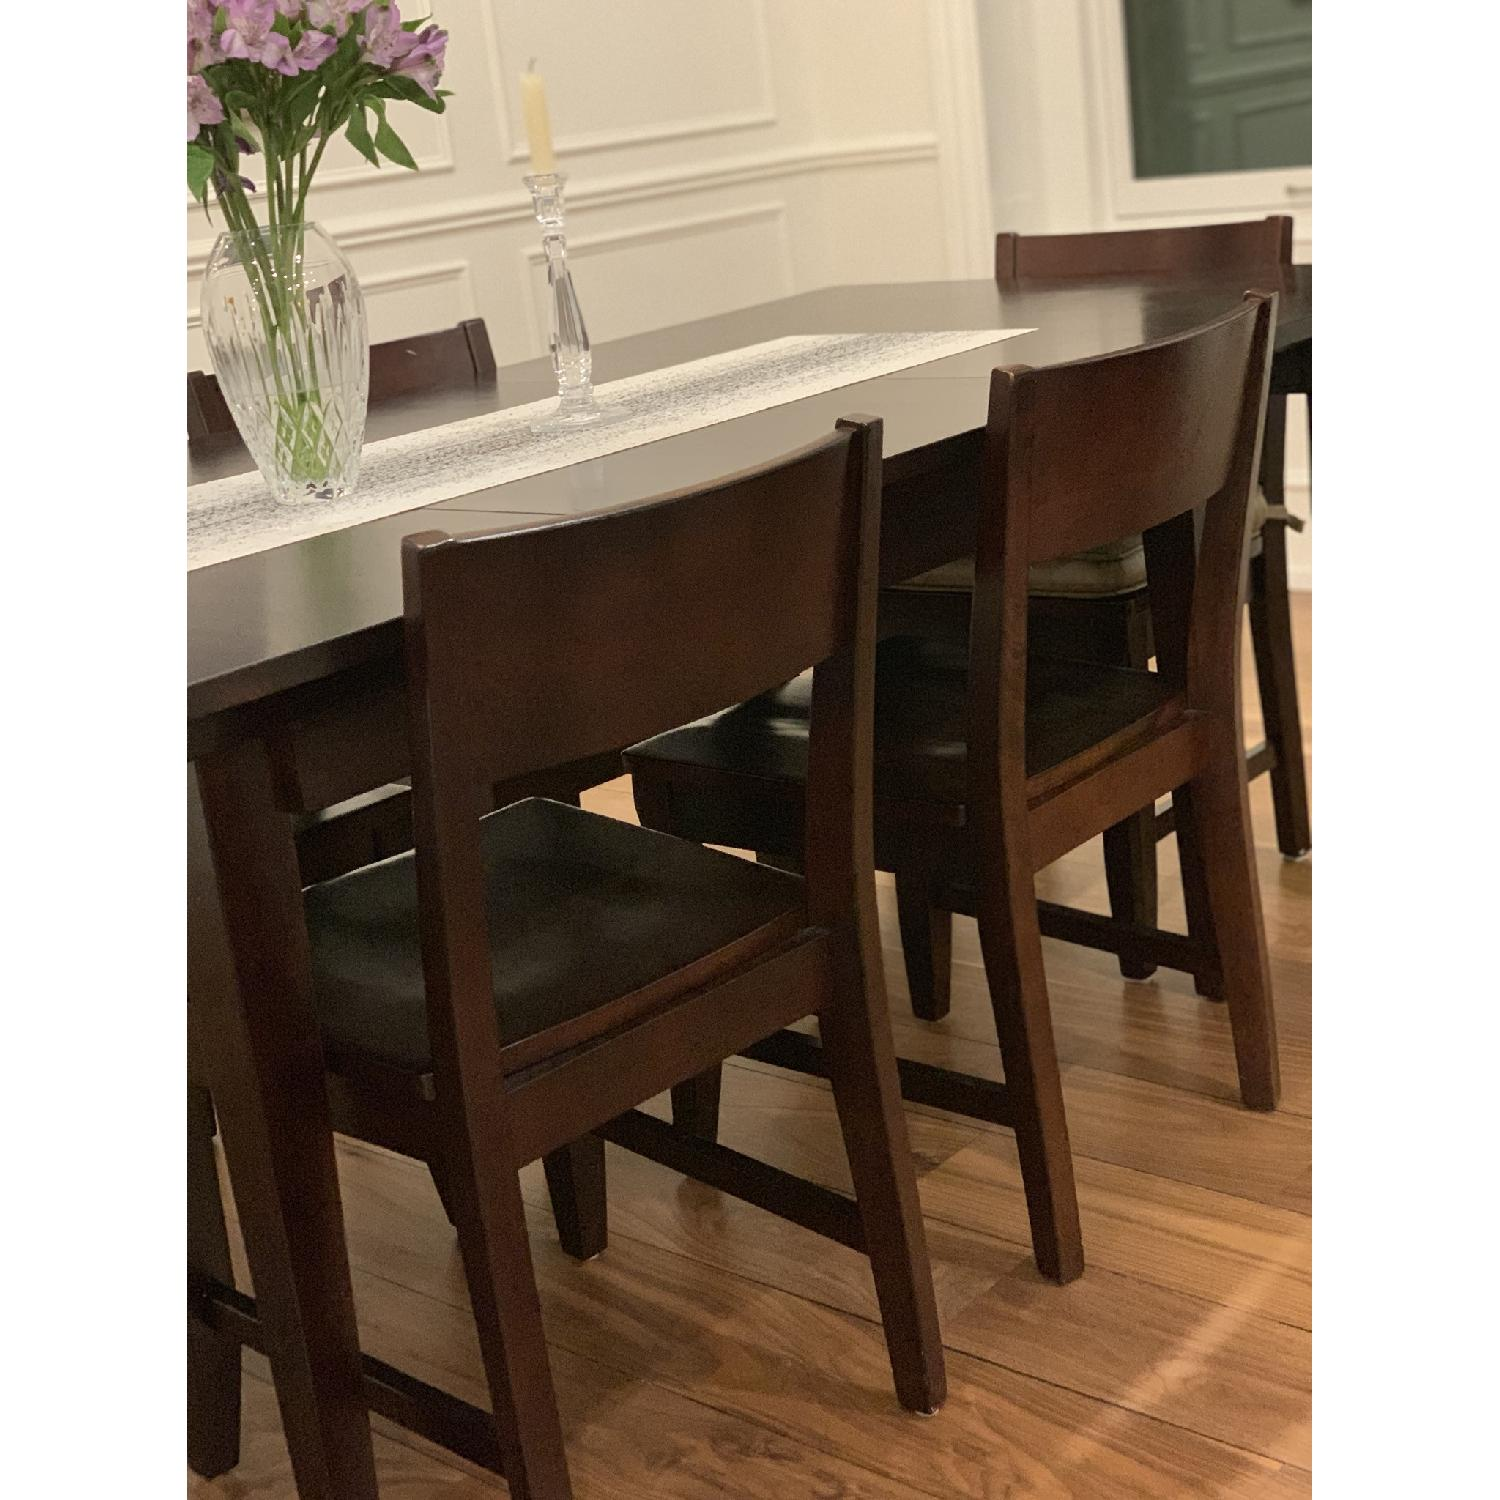 Montreal Espresso Wood Chairs - image-2